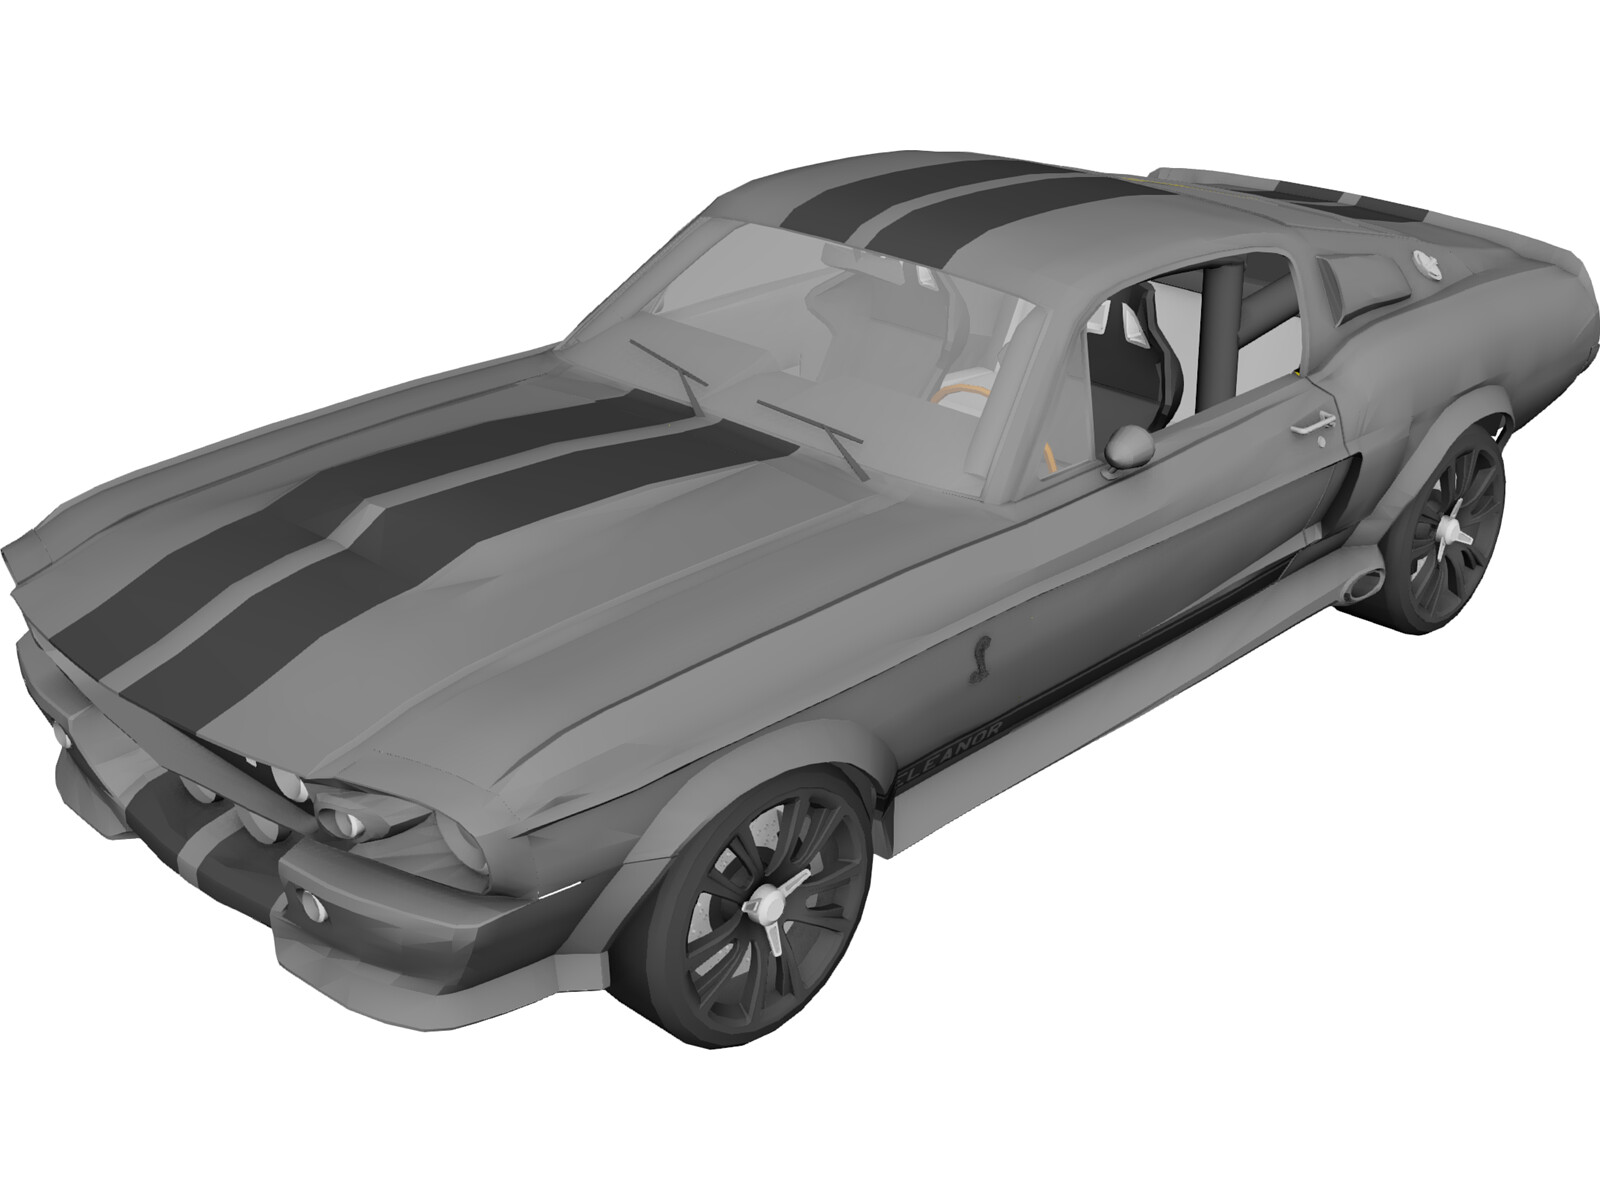 Ford Mustang Shelby Gt500 Eleanor 1967 3d Model 3d Cad